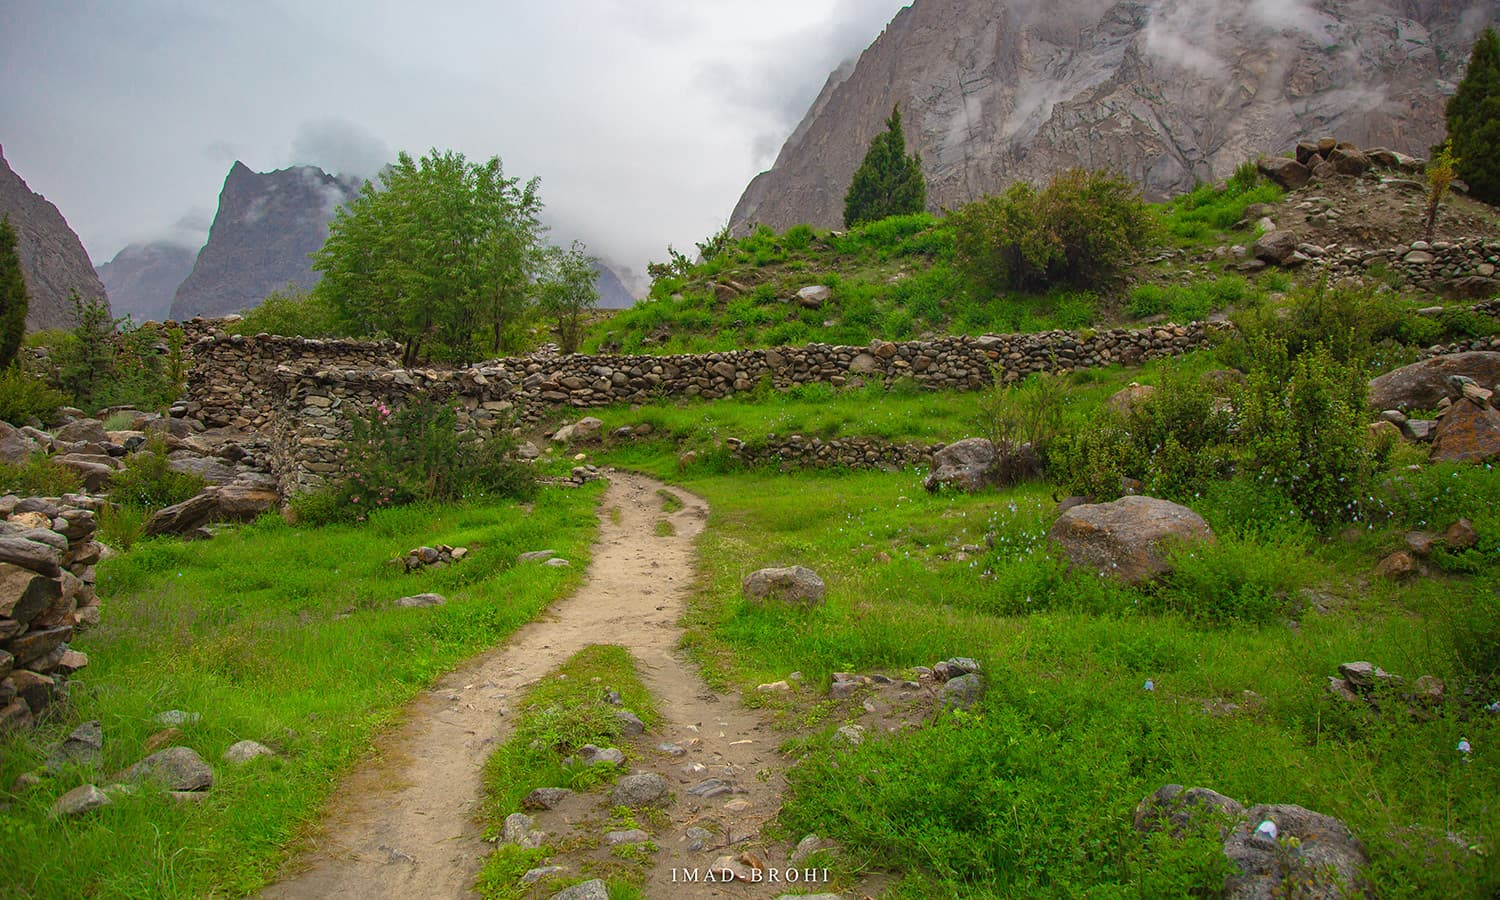 The trek passed through several structures built to keep goats and cows.